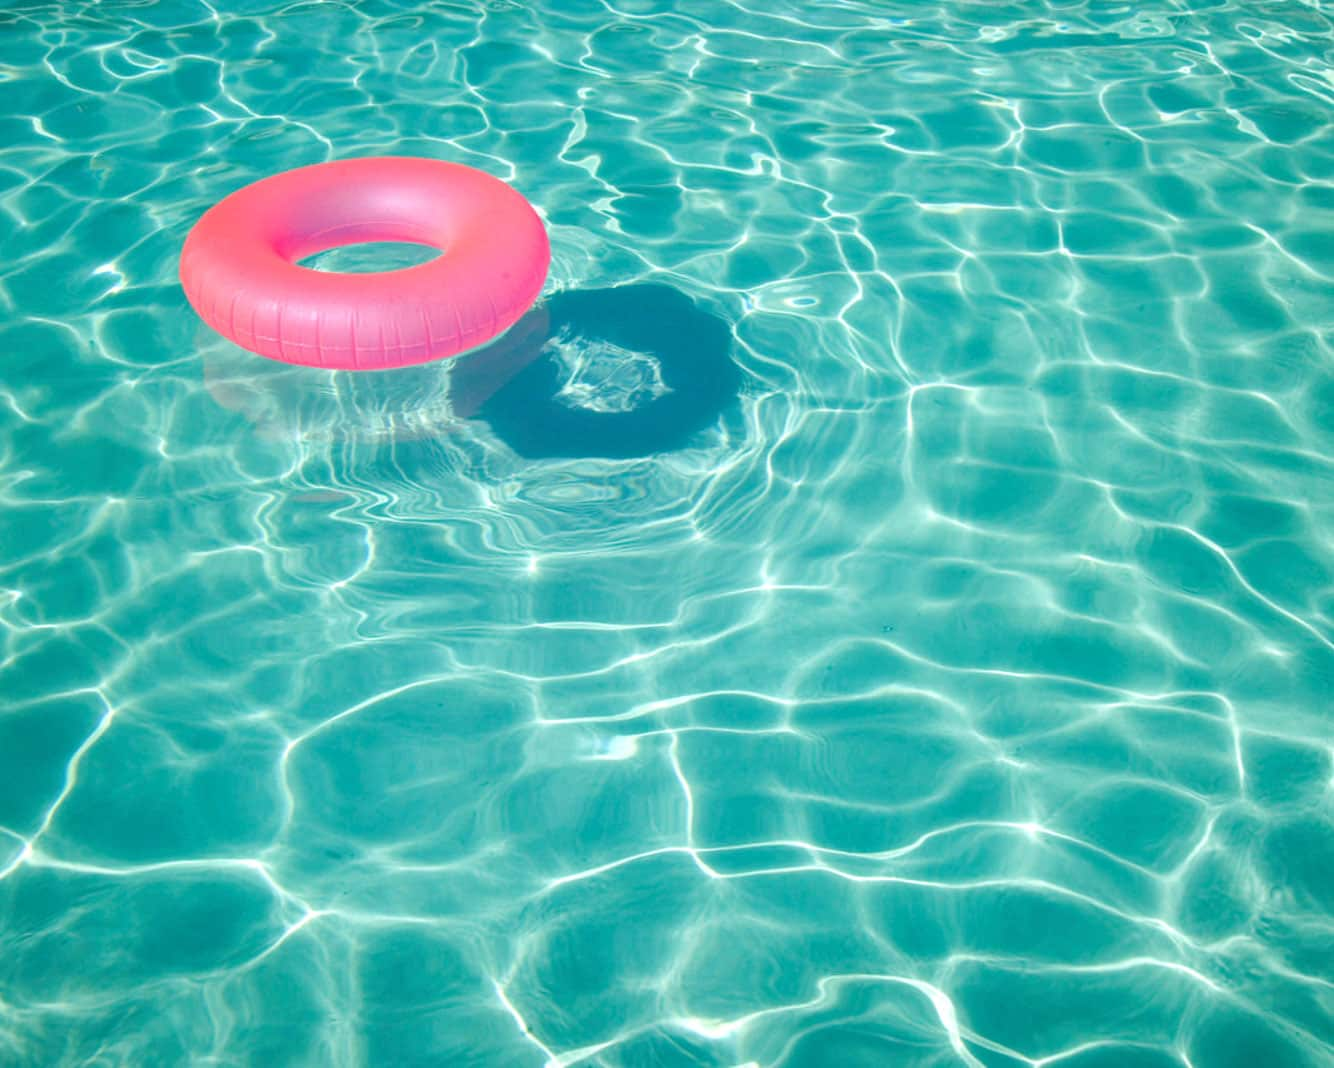 pink floater on a sparkling pool